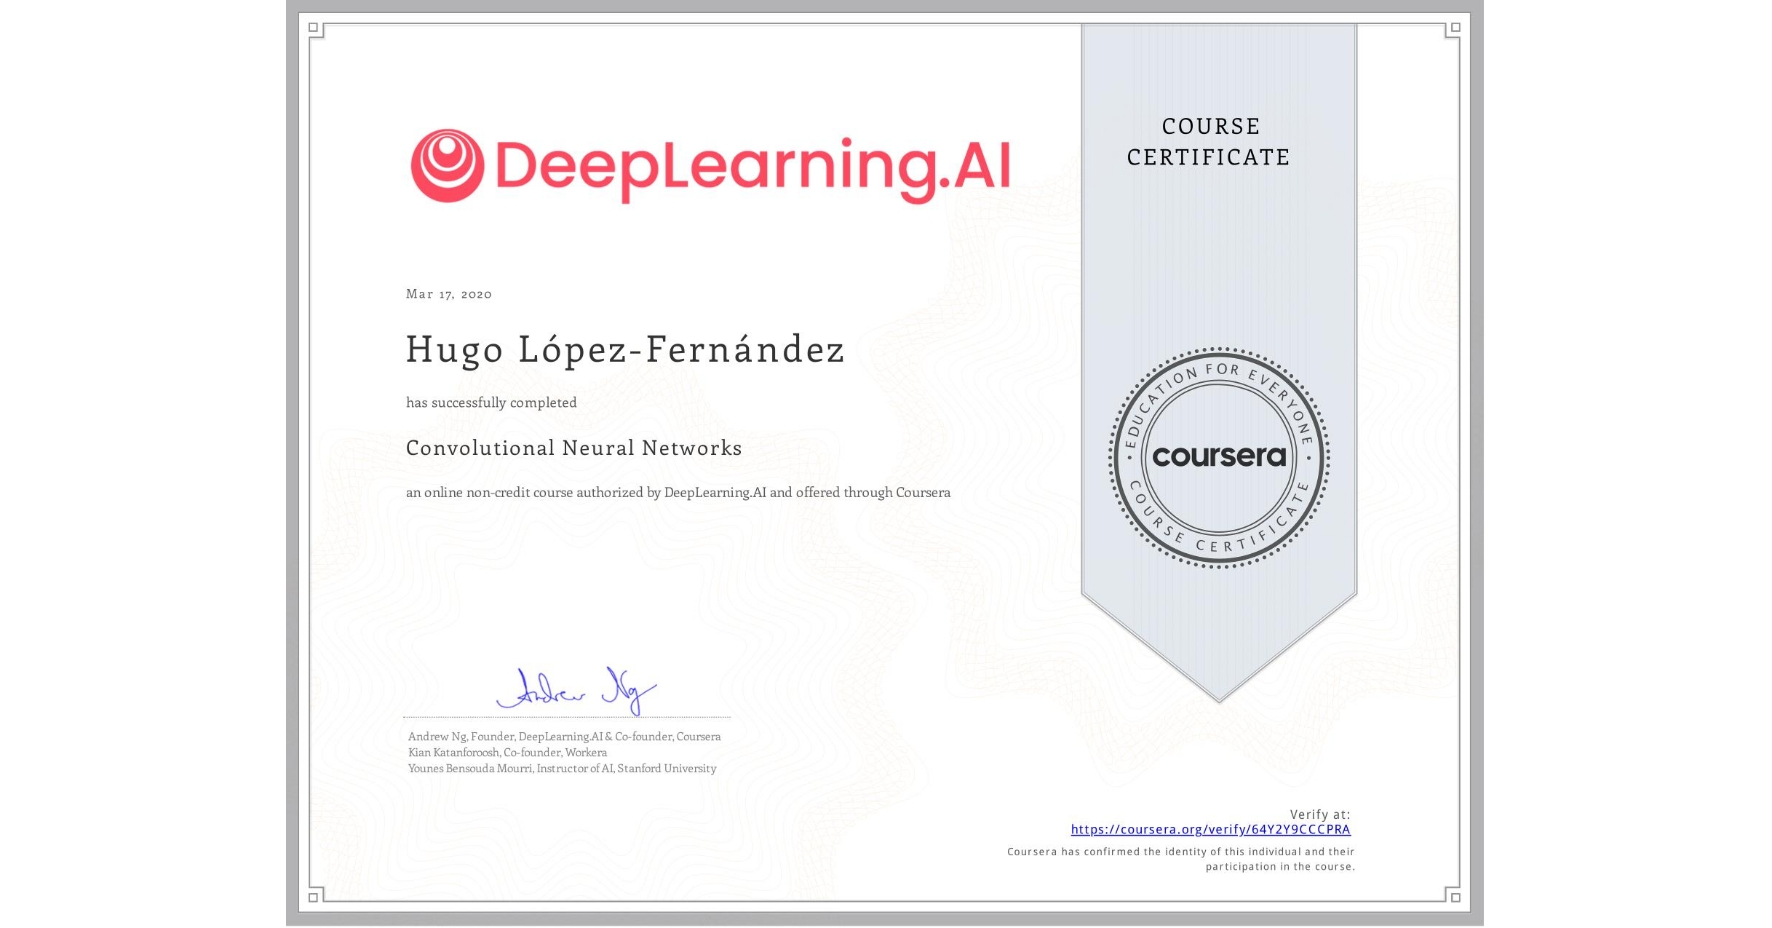 View certificate for Hugo López-Fernández, Convolutional Neural Networks, an online non-credit course authorized by DeepLearning.AI and offered through Coursera